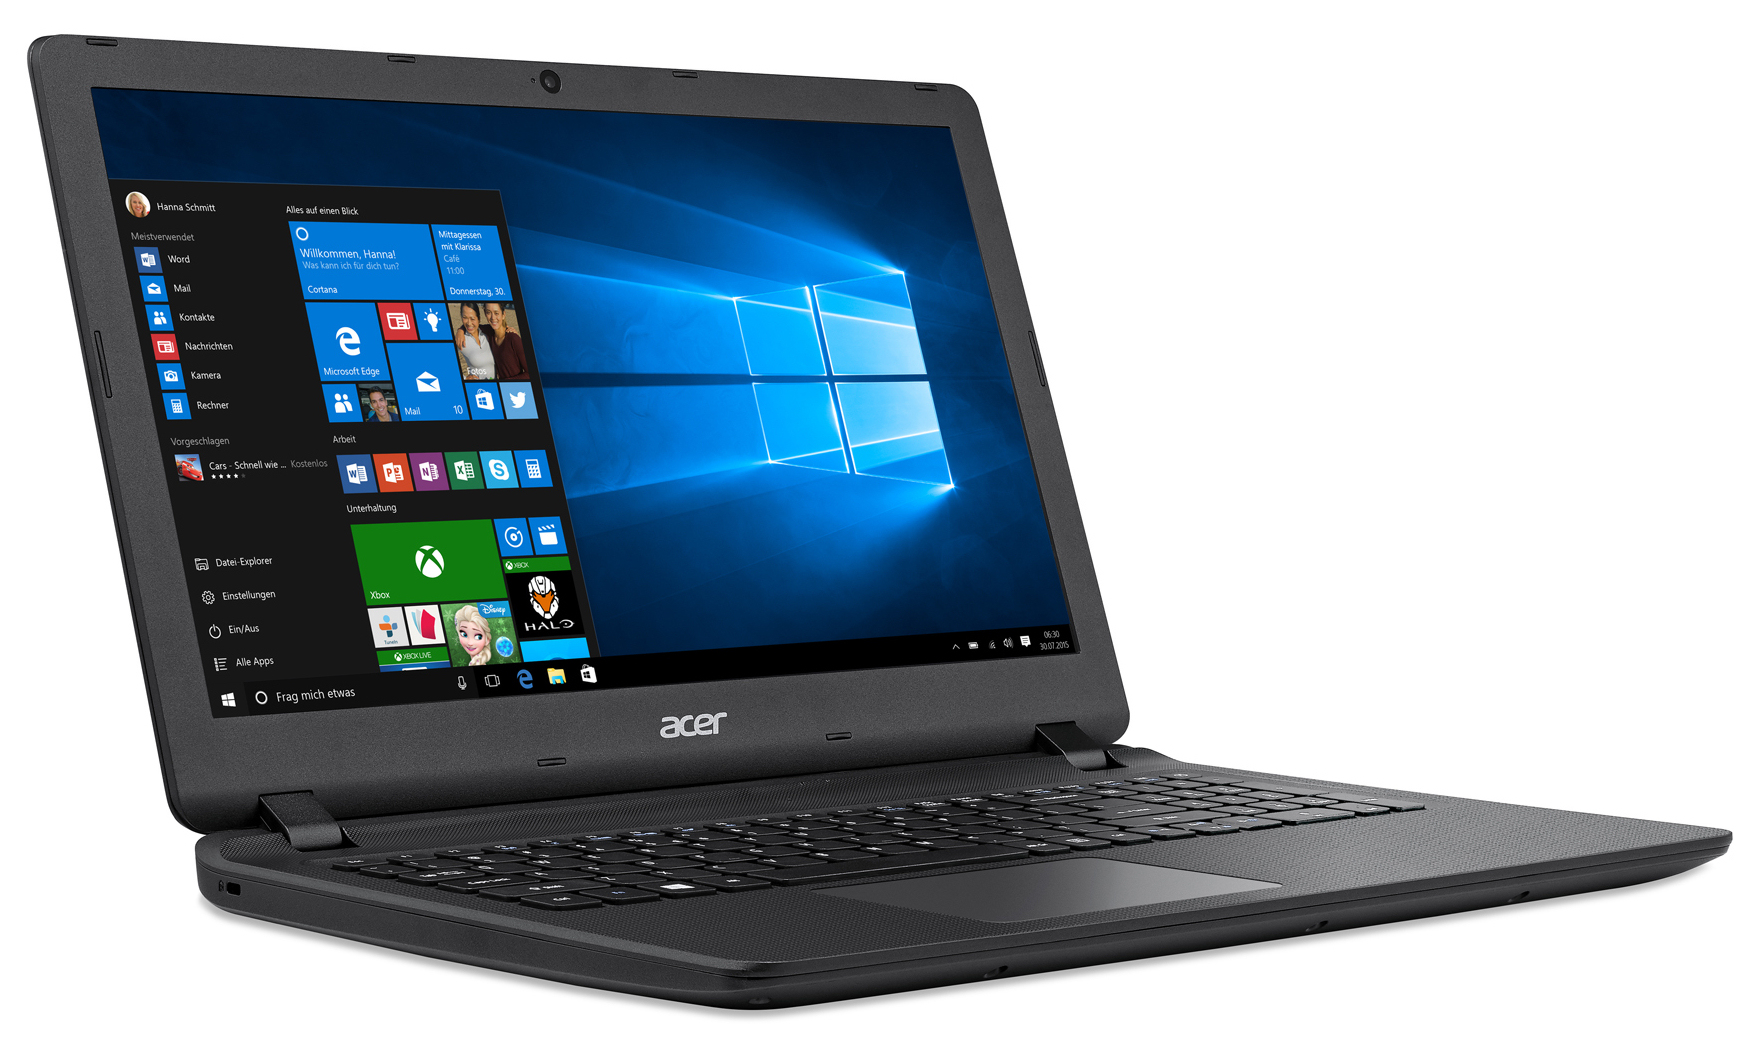 Acer Aspire 5333 Intel WLAN Treiber Windows 7